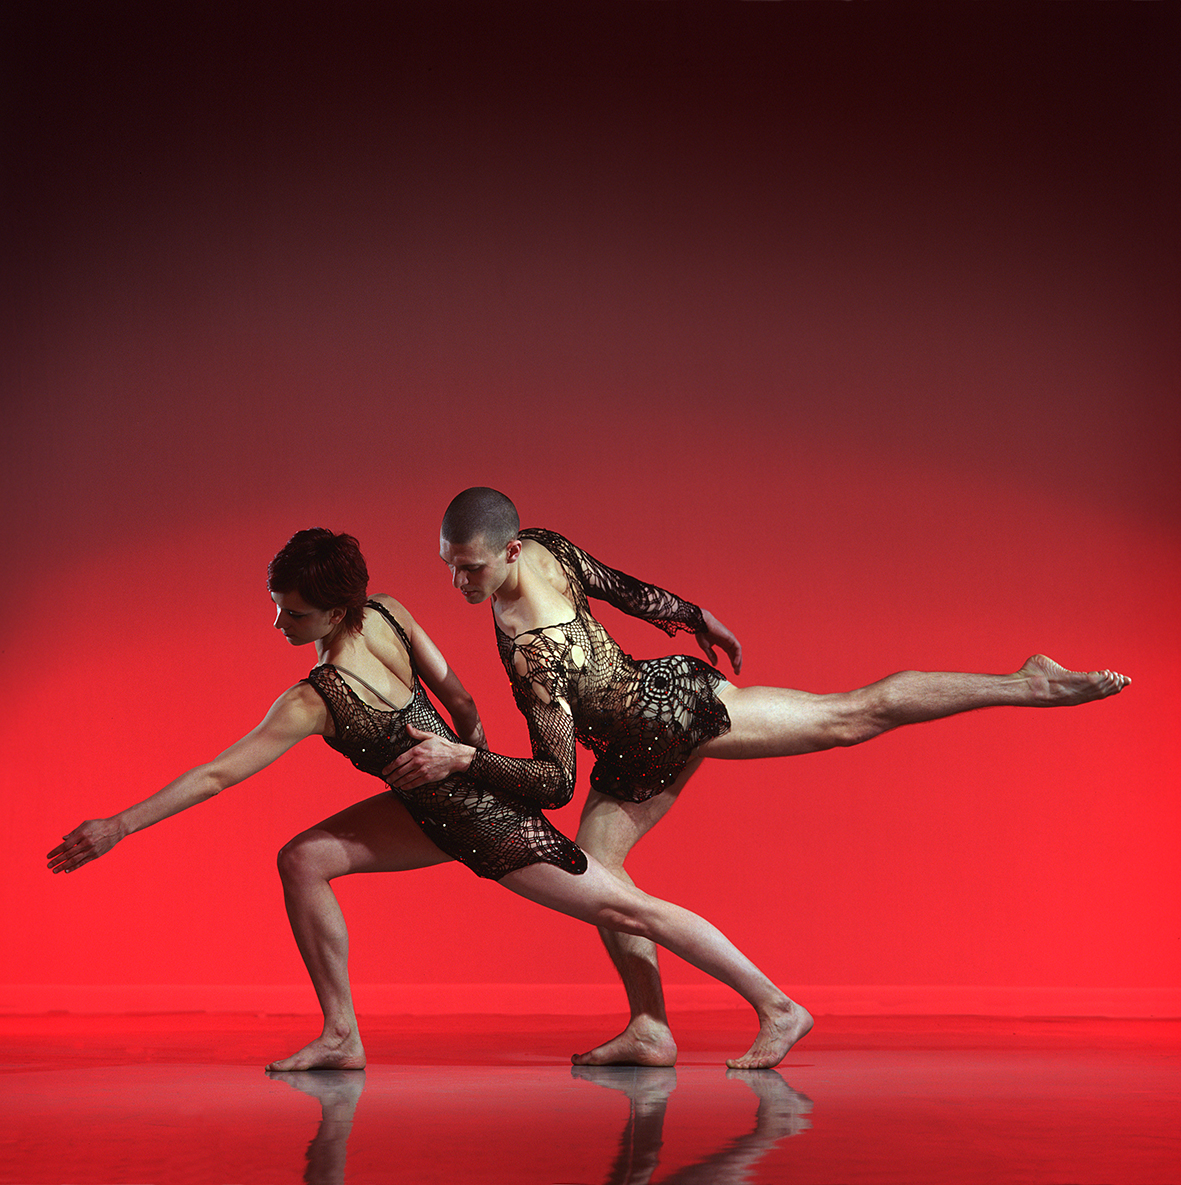 Shimmerdancers, JonathanGoddard & Ino Riga. Photo Chris Nash